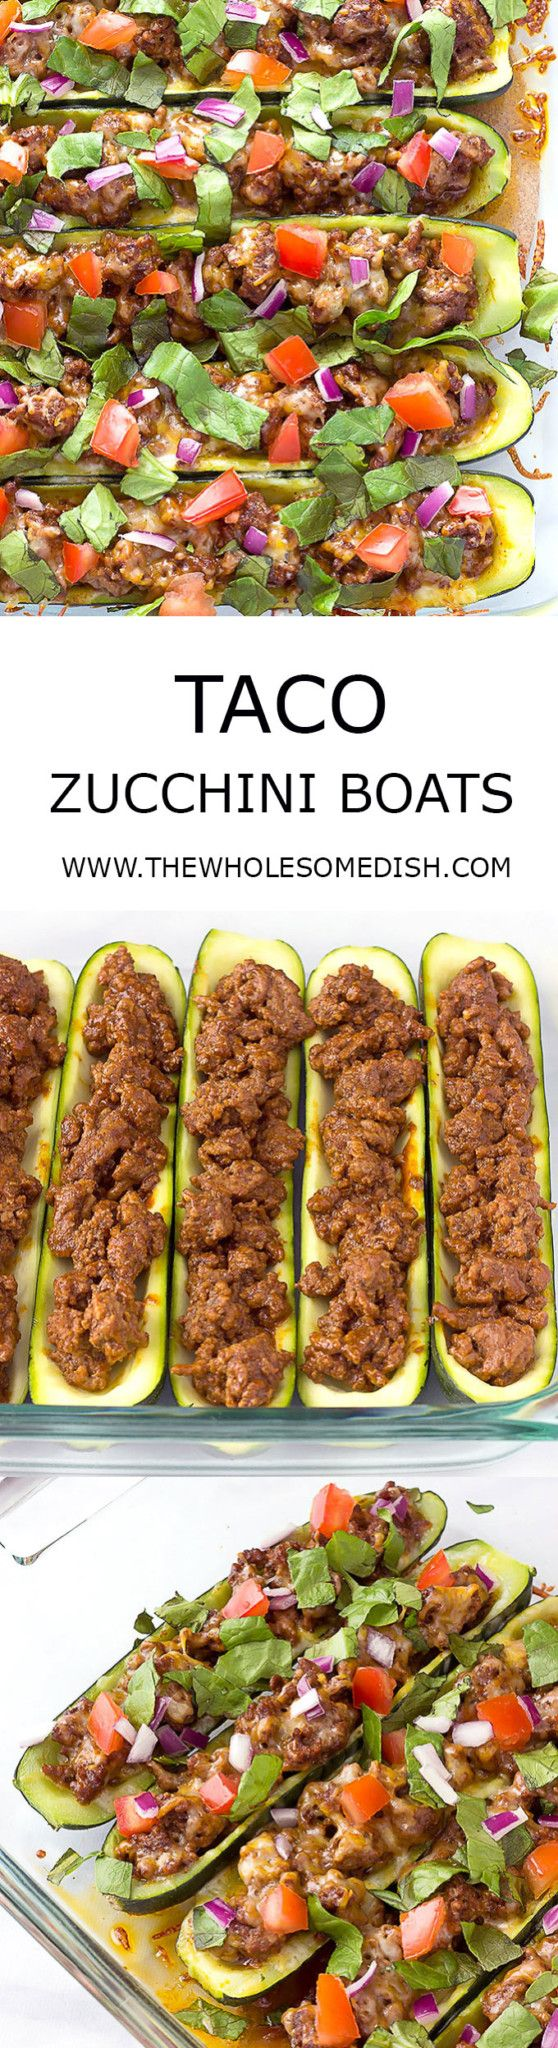 Taco Zucchini Boats - Easy recipe with seasoned taco meat stuffed in zucchini, topped with cheese, & baked. Top with your favorite taco toppings. Simple low carb dinner. via @afinks